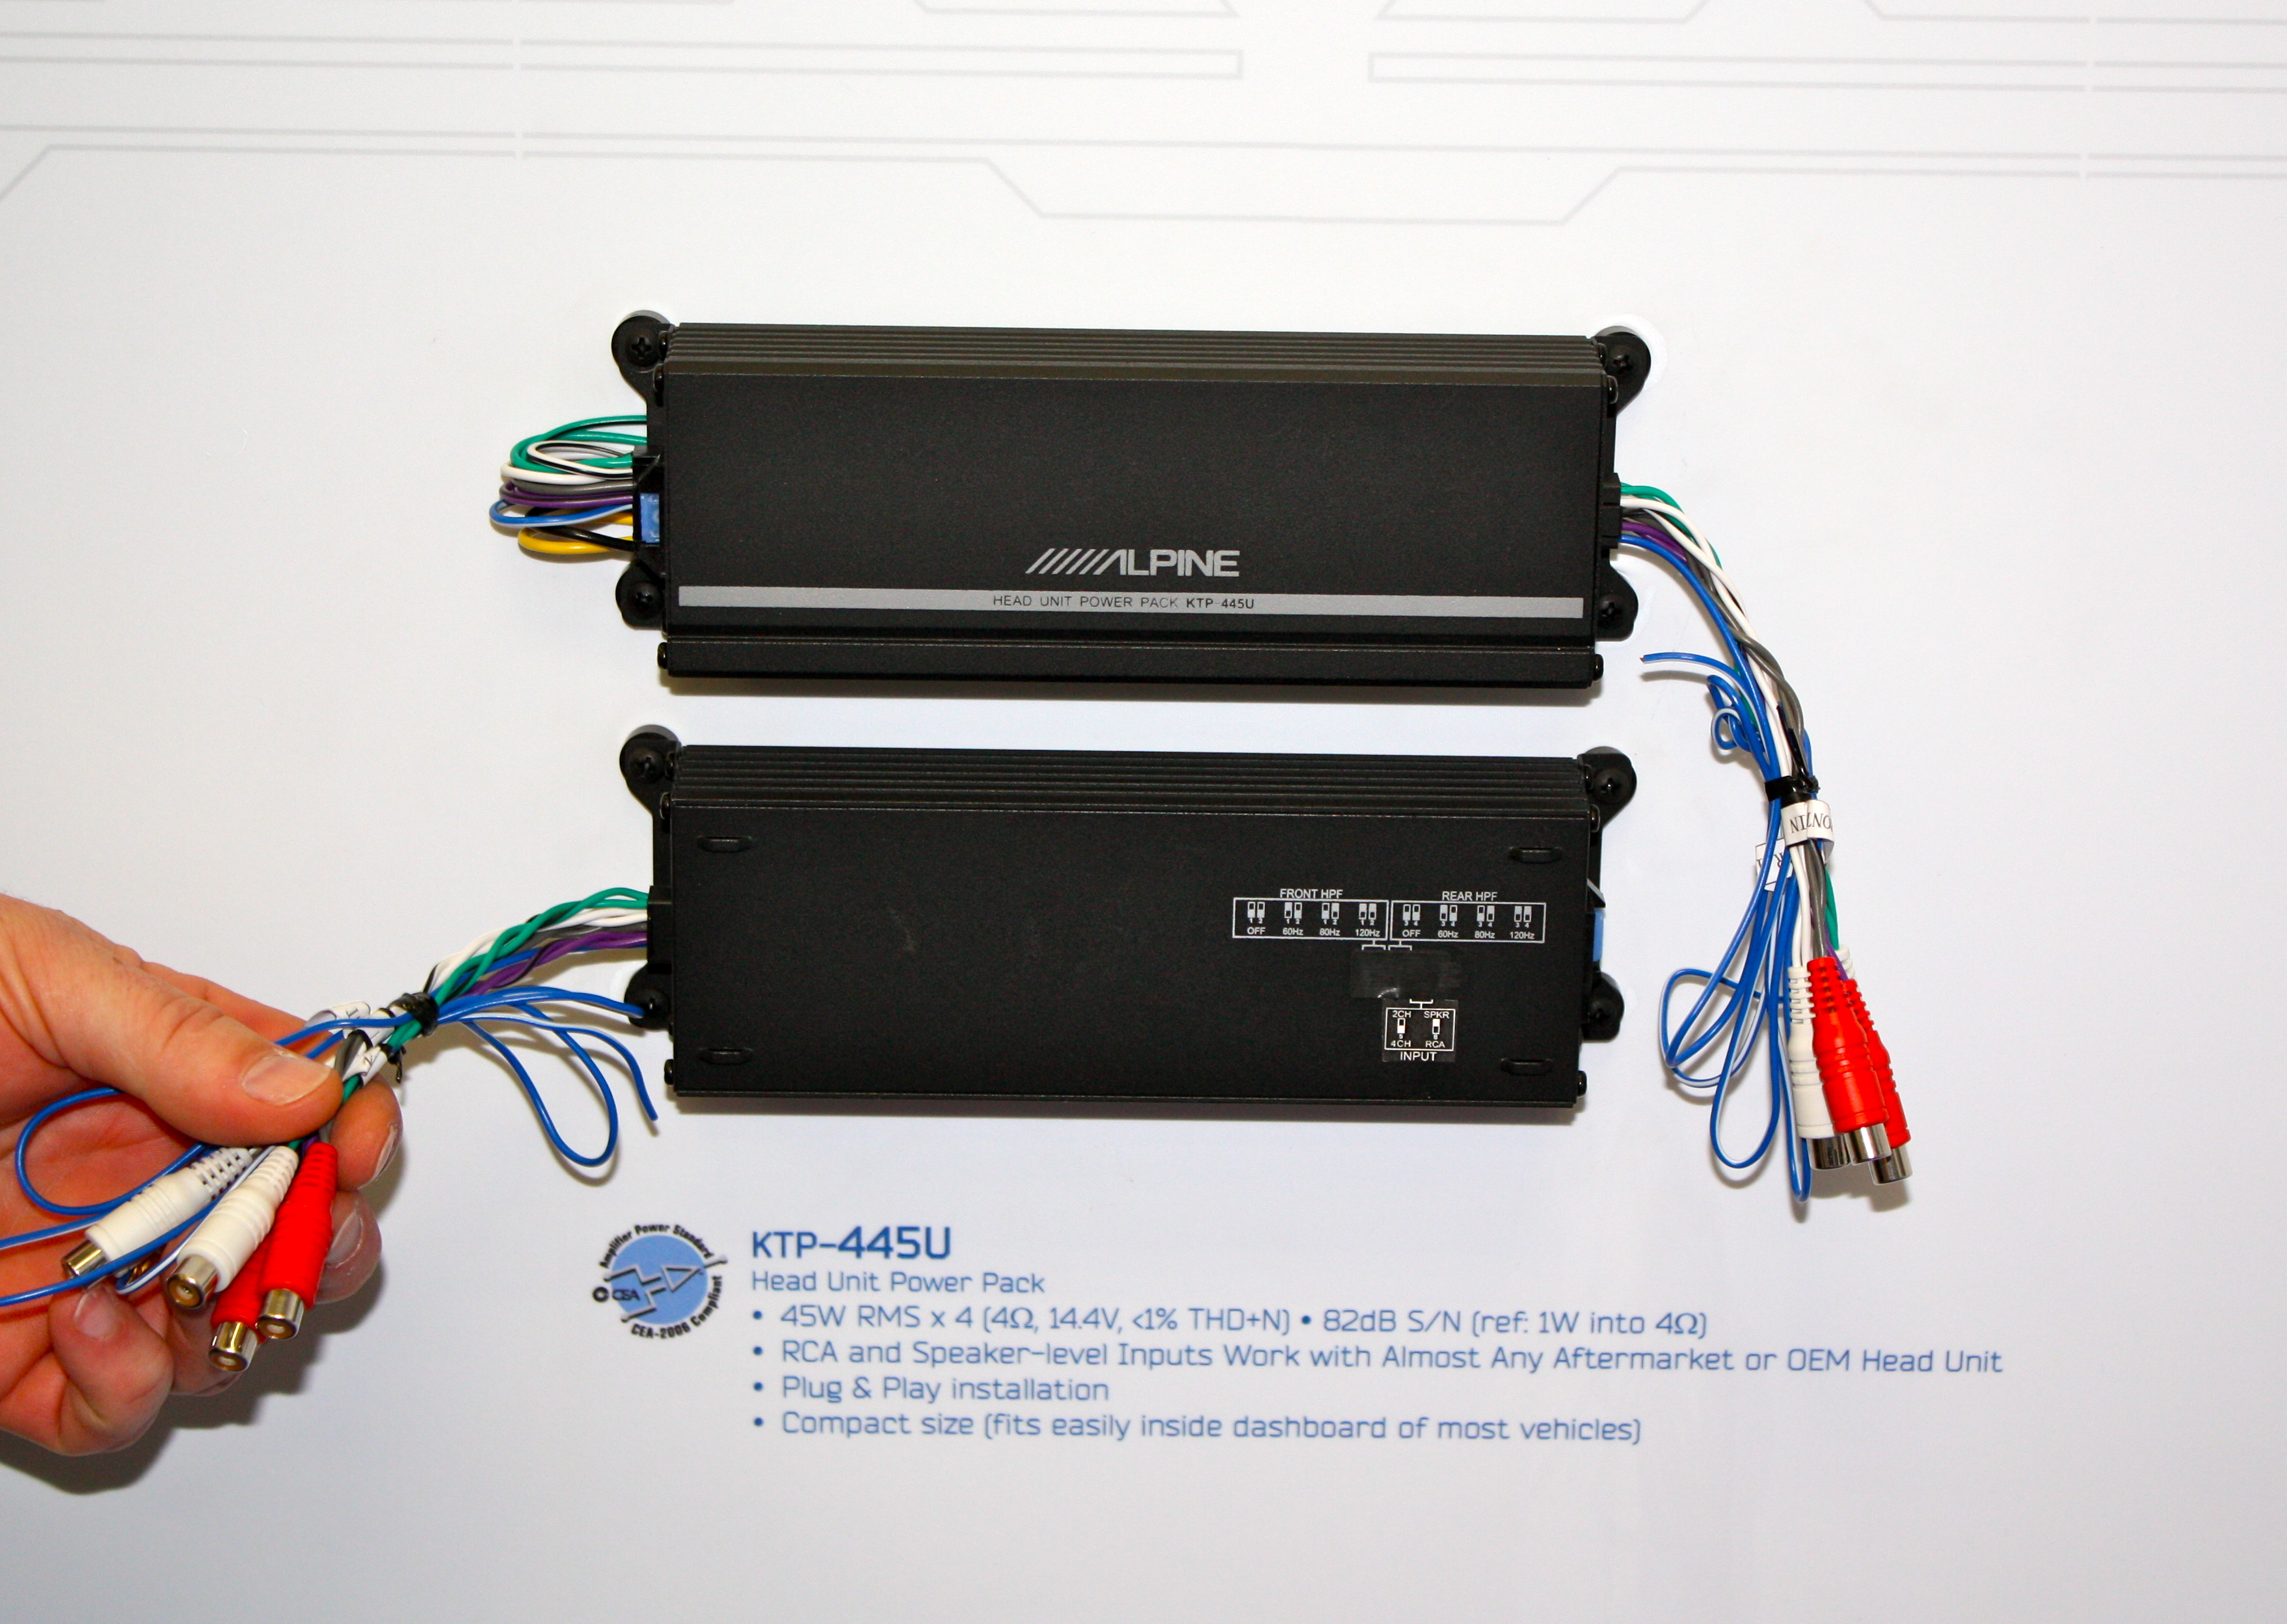 autotek at554 power supply car audio systems top autotek at5power supply deals at mysimon compare brands